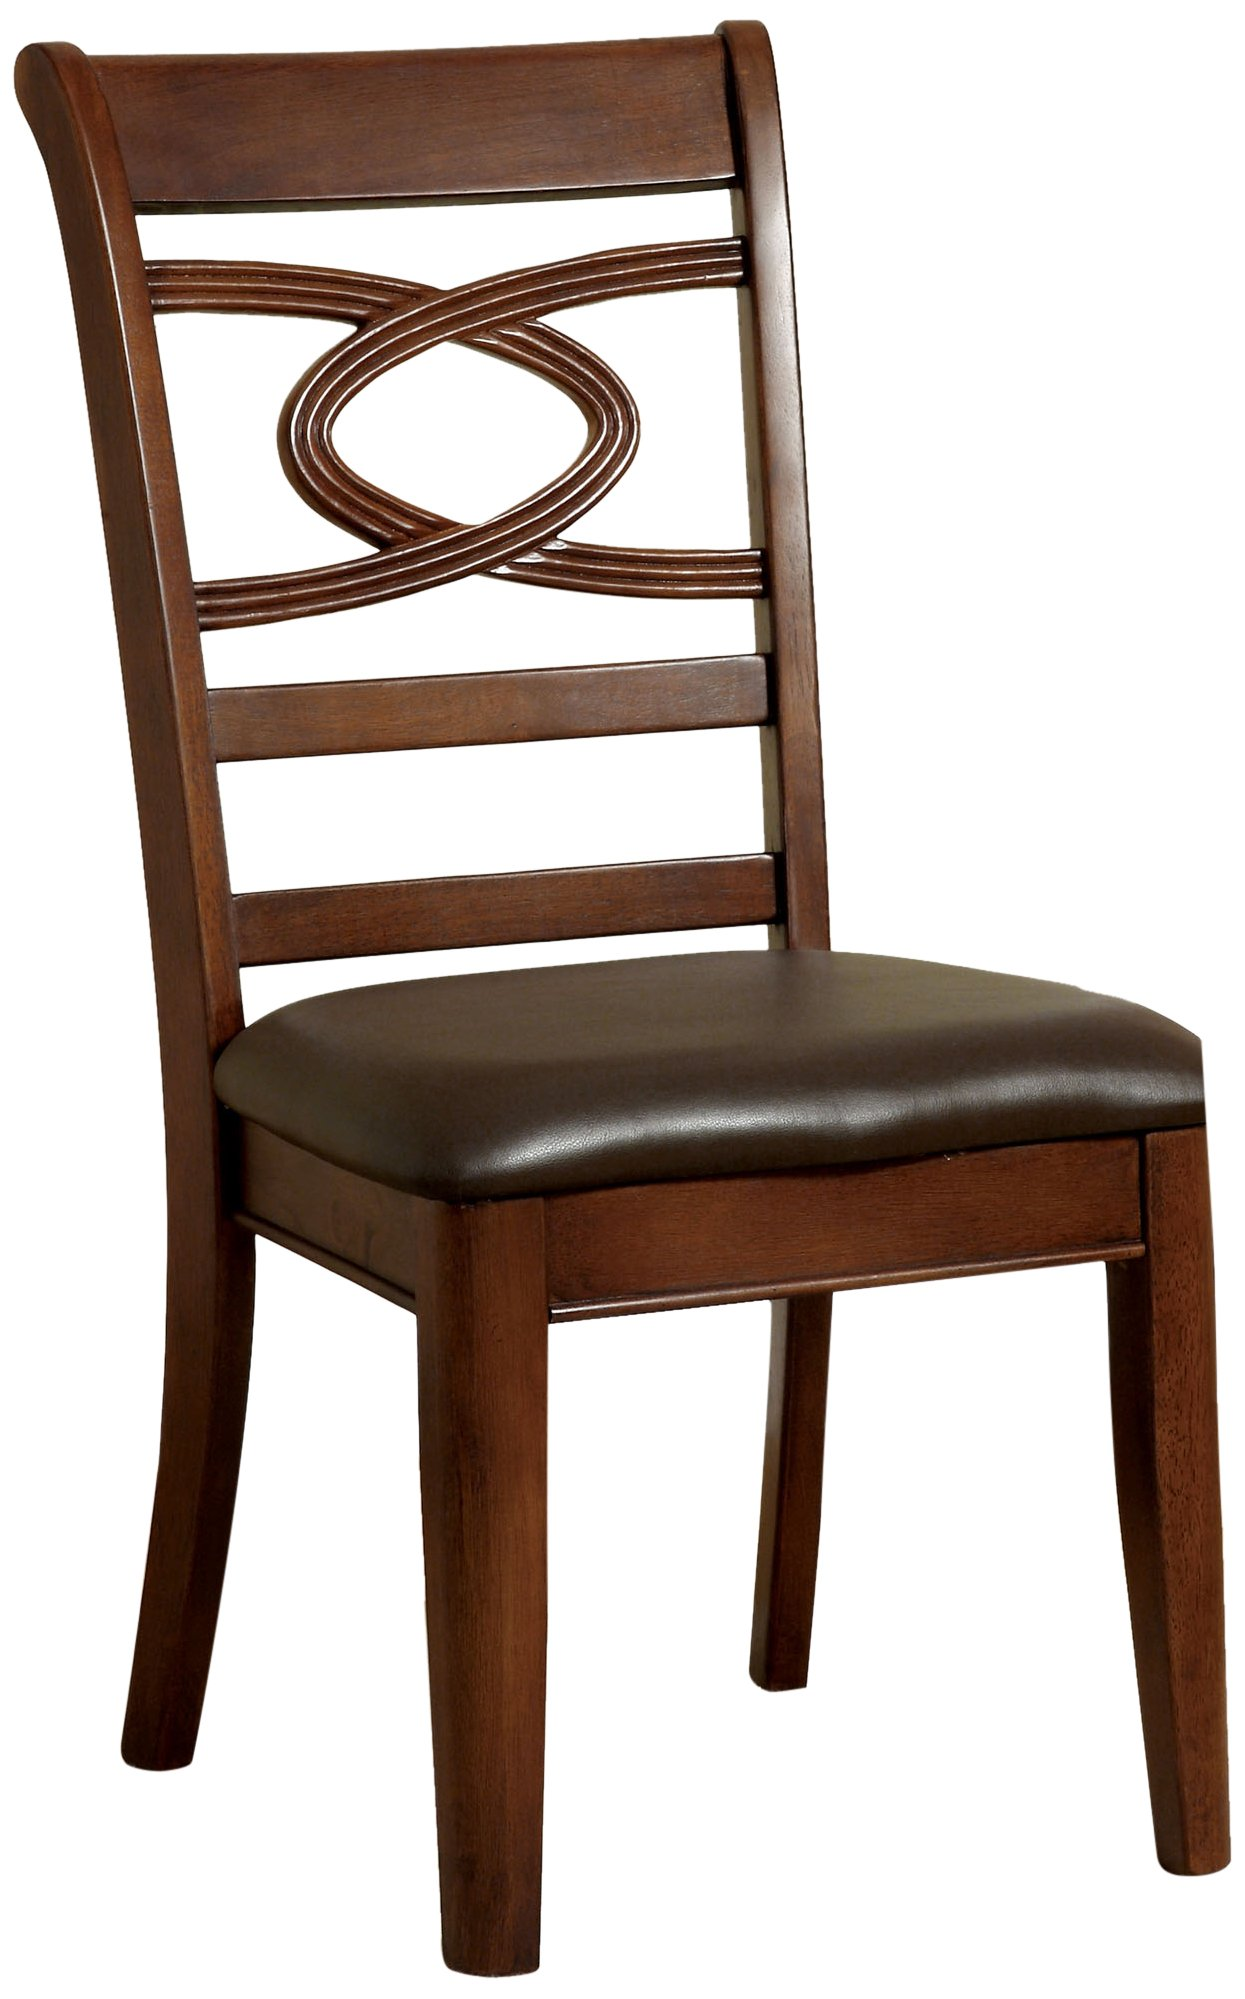 HOMES: Inside + Out Iohomes Reminson Modern Formal Side Chair, Brown Cherry Finish, Set of 2 by Furniture of America